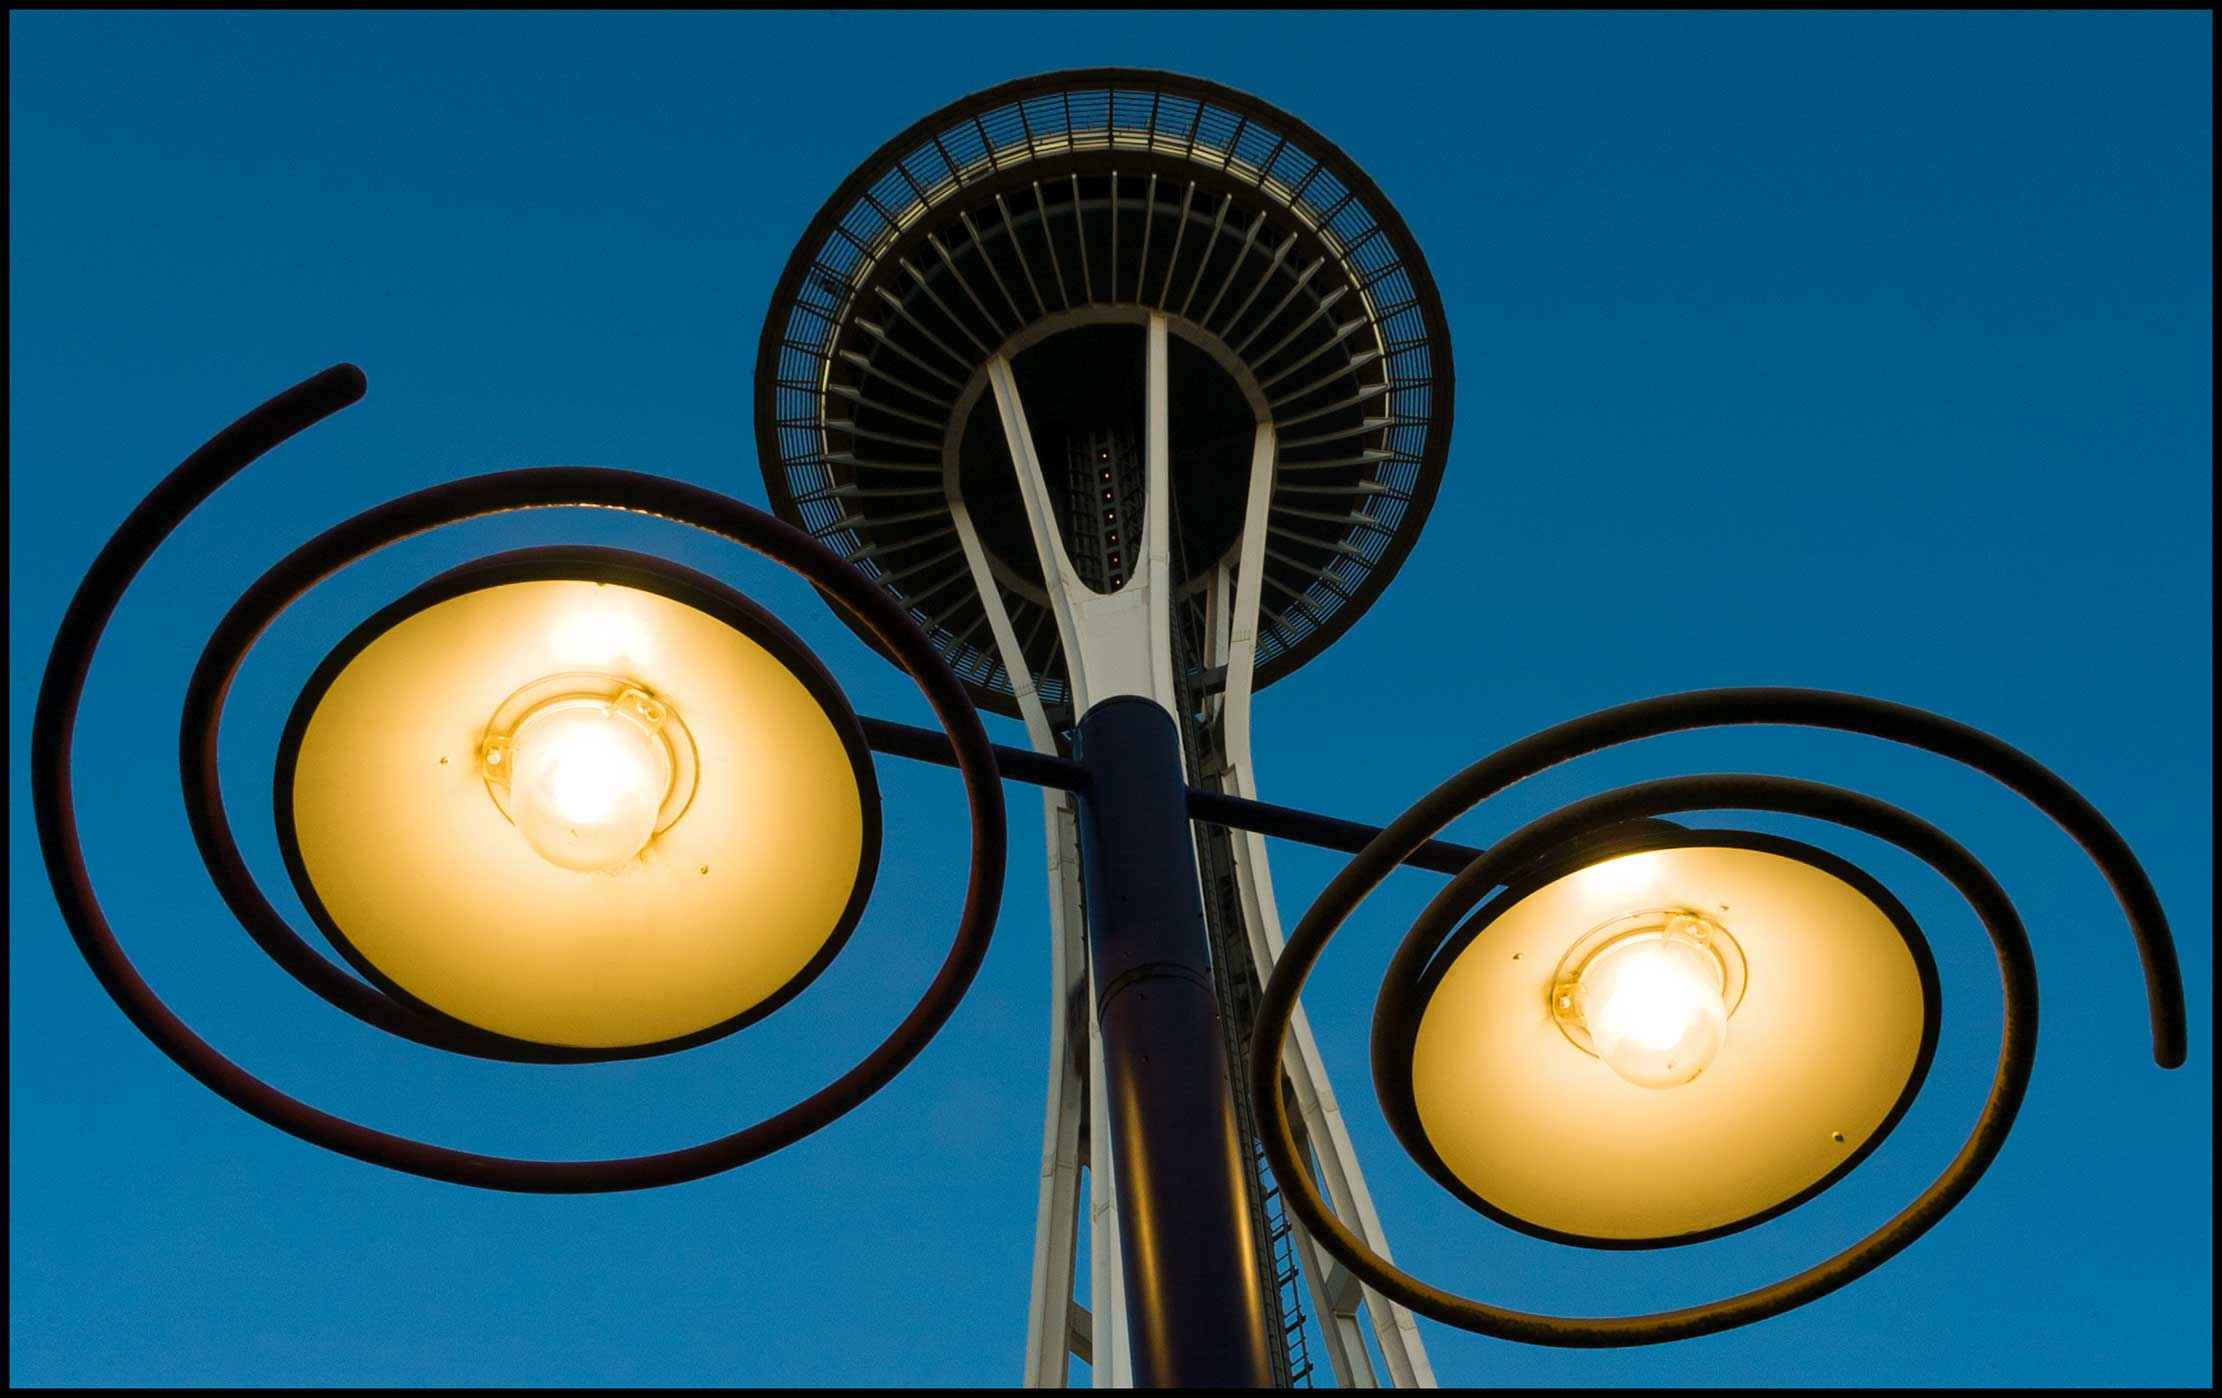 Seattle Space Needle by Skookum-Models